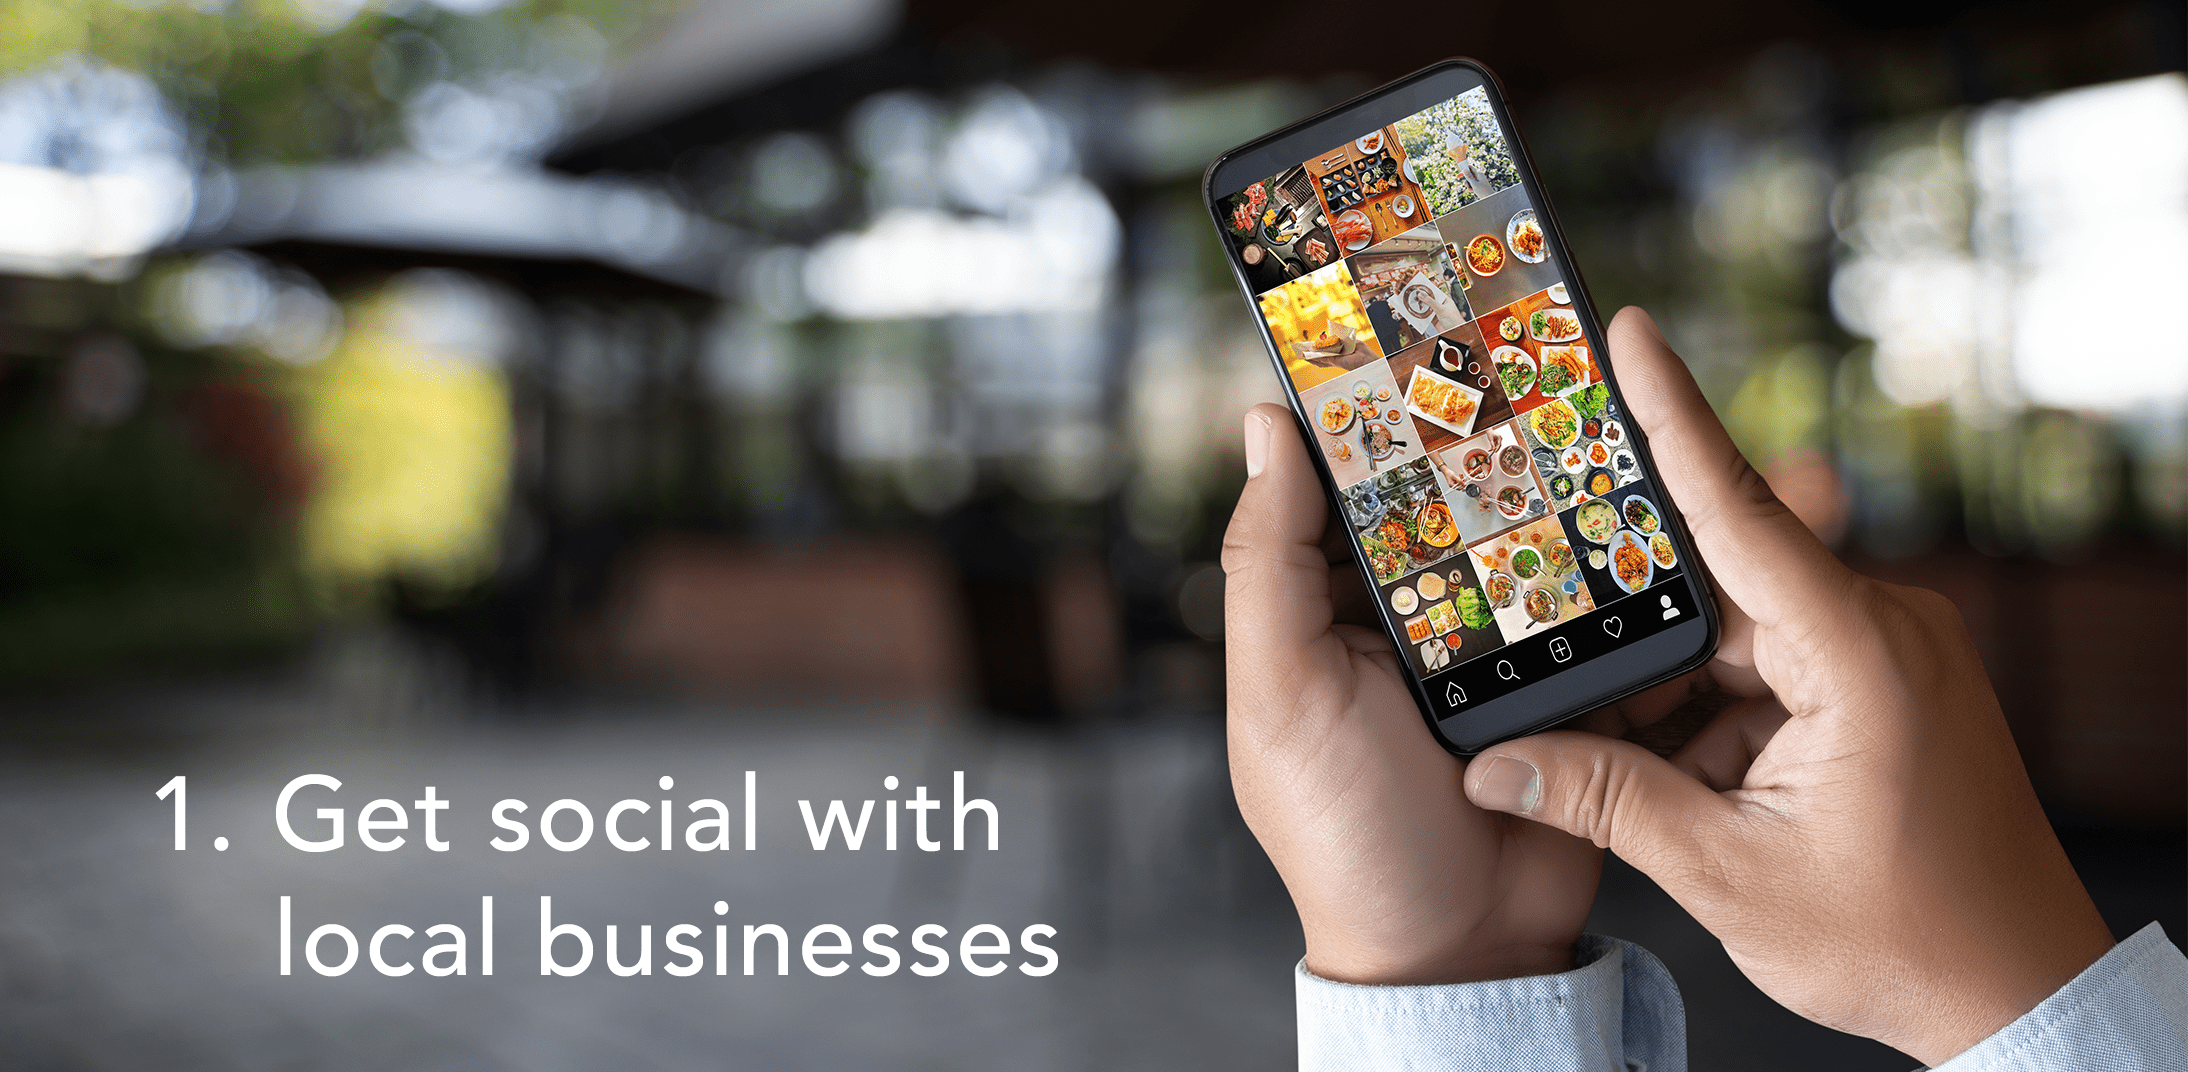 Apartment Marketing Tips - Get social with local businesses